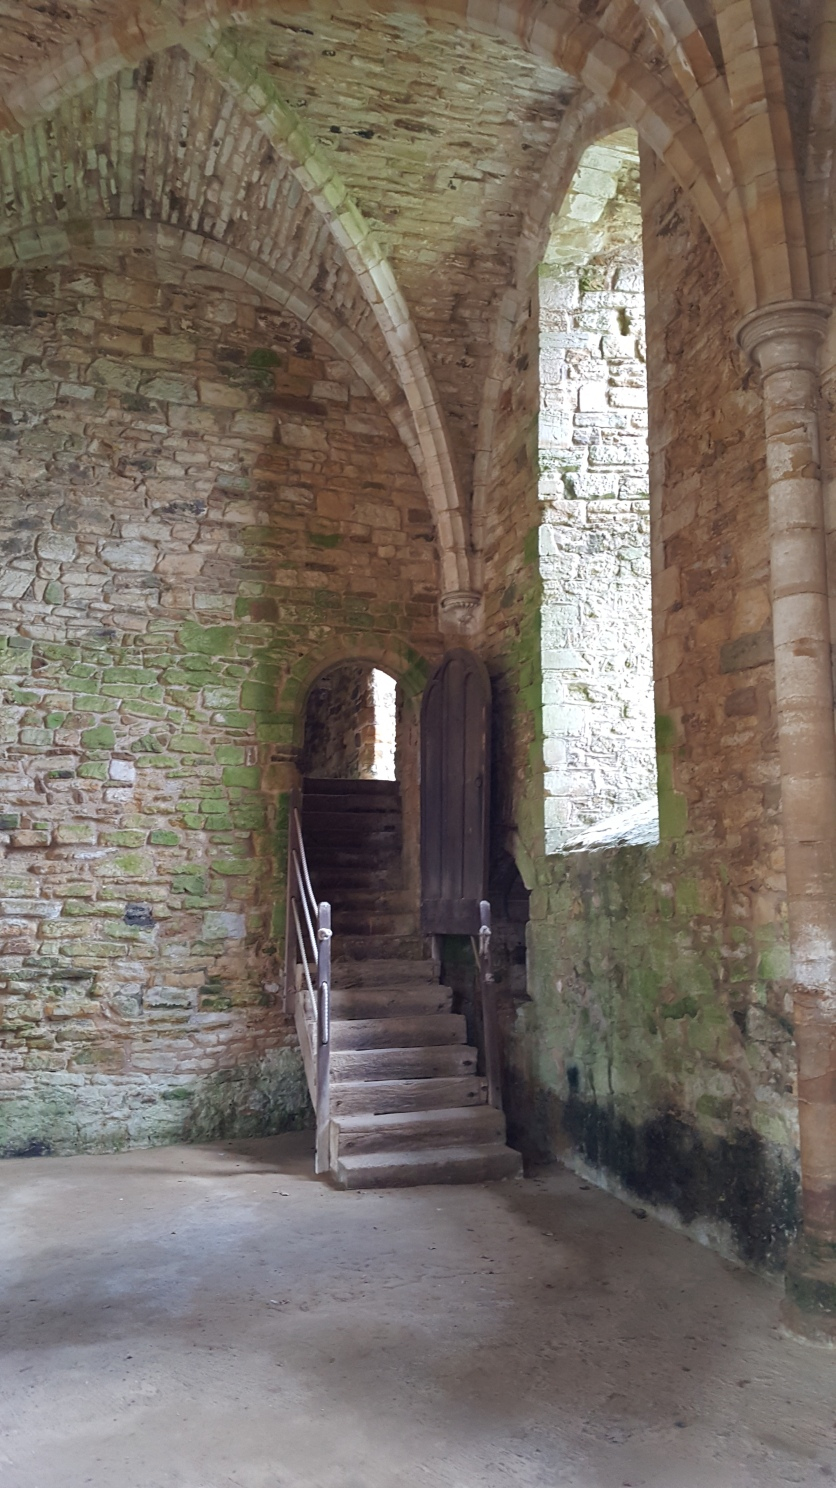 Stairs to the south end of the abbey buildings, showing the steep terracing in place